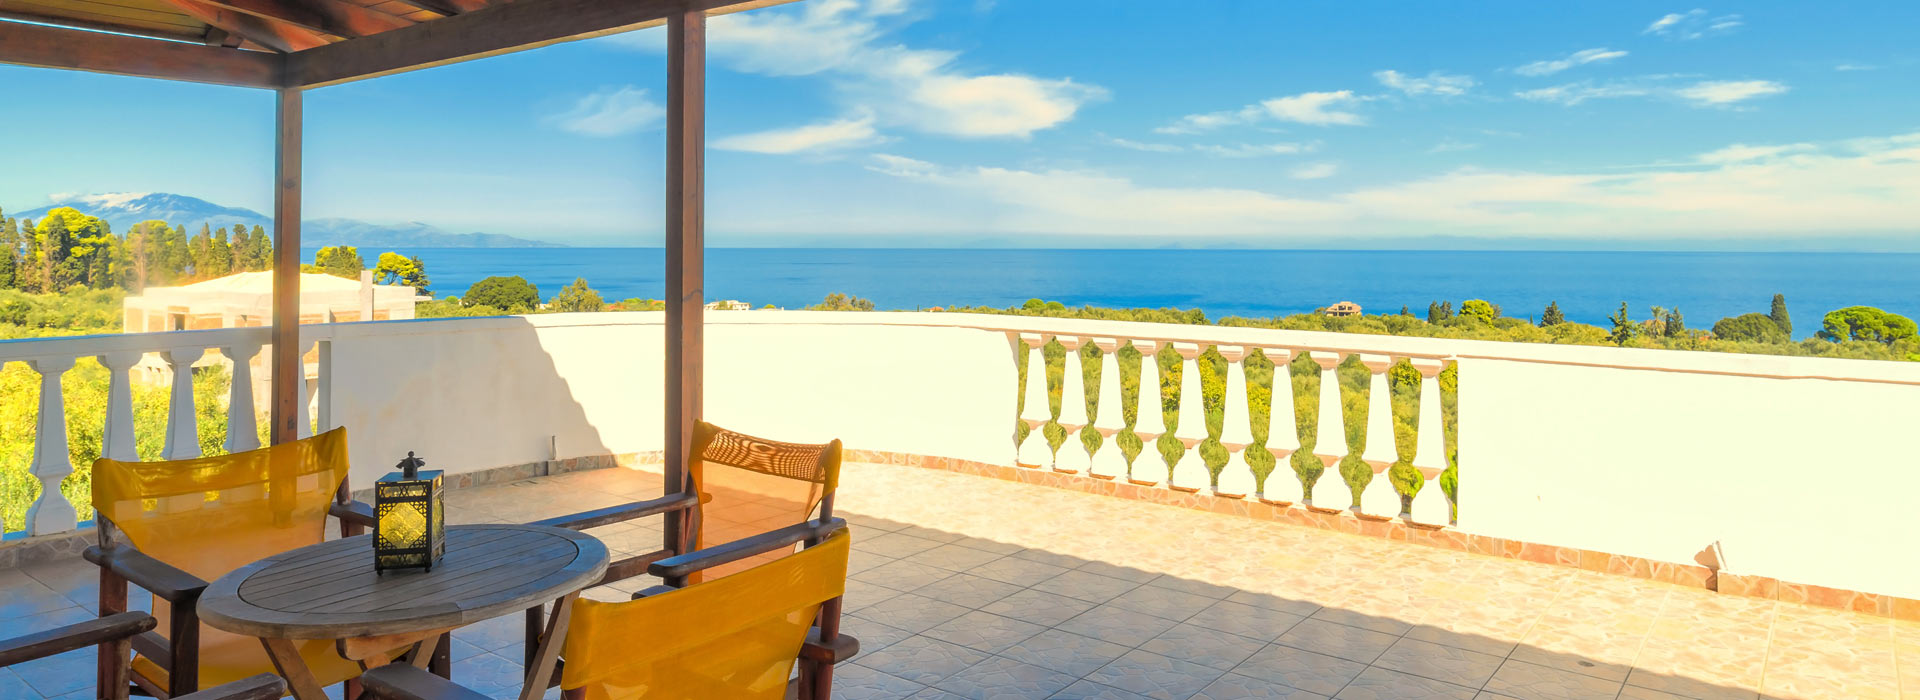 three-bedroom apartment with sea view parys villas akrotiri zante zakynthos greece